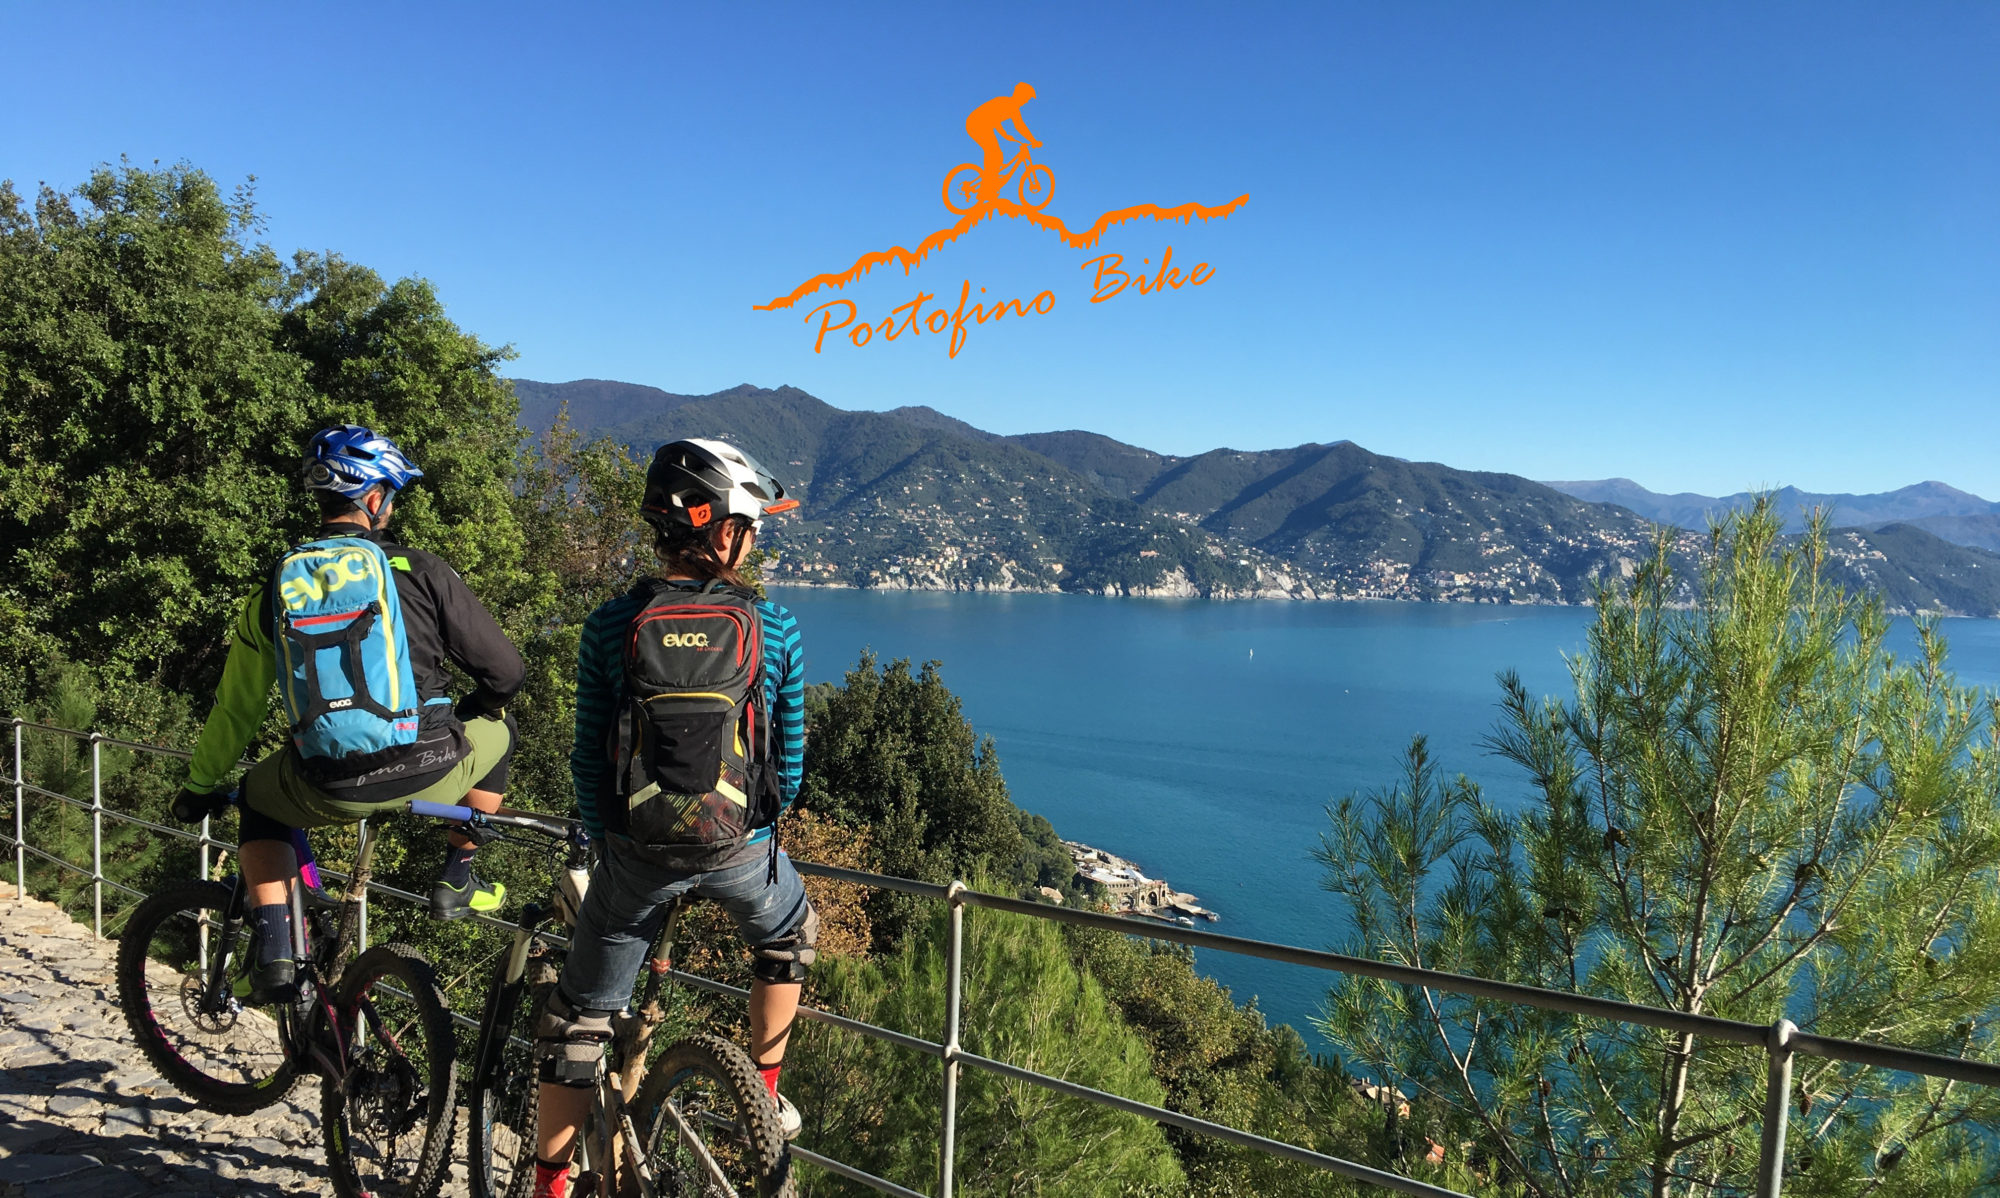 Portofino Bike | Events, Guided tours and a lot of Fun